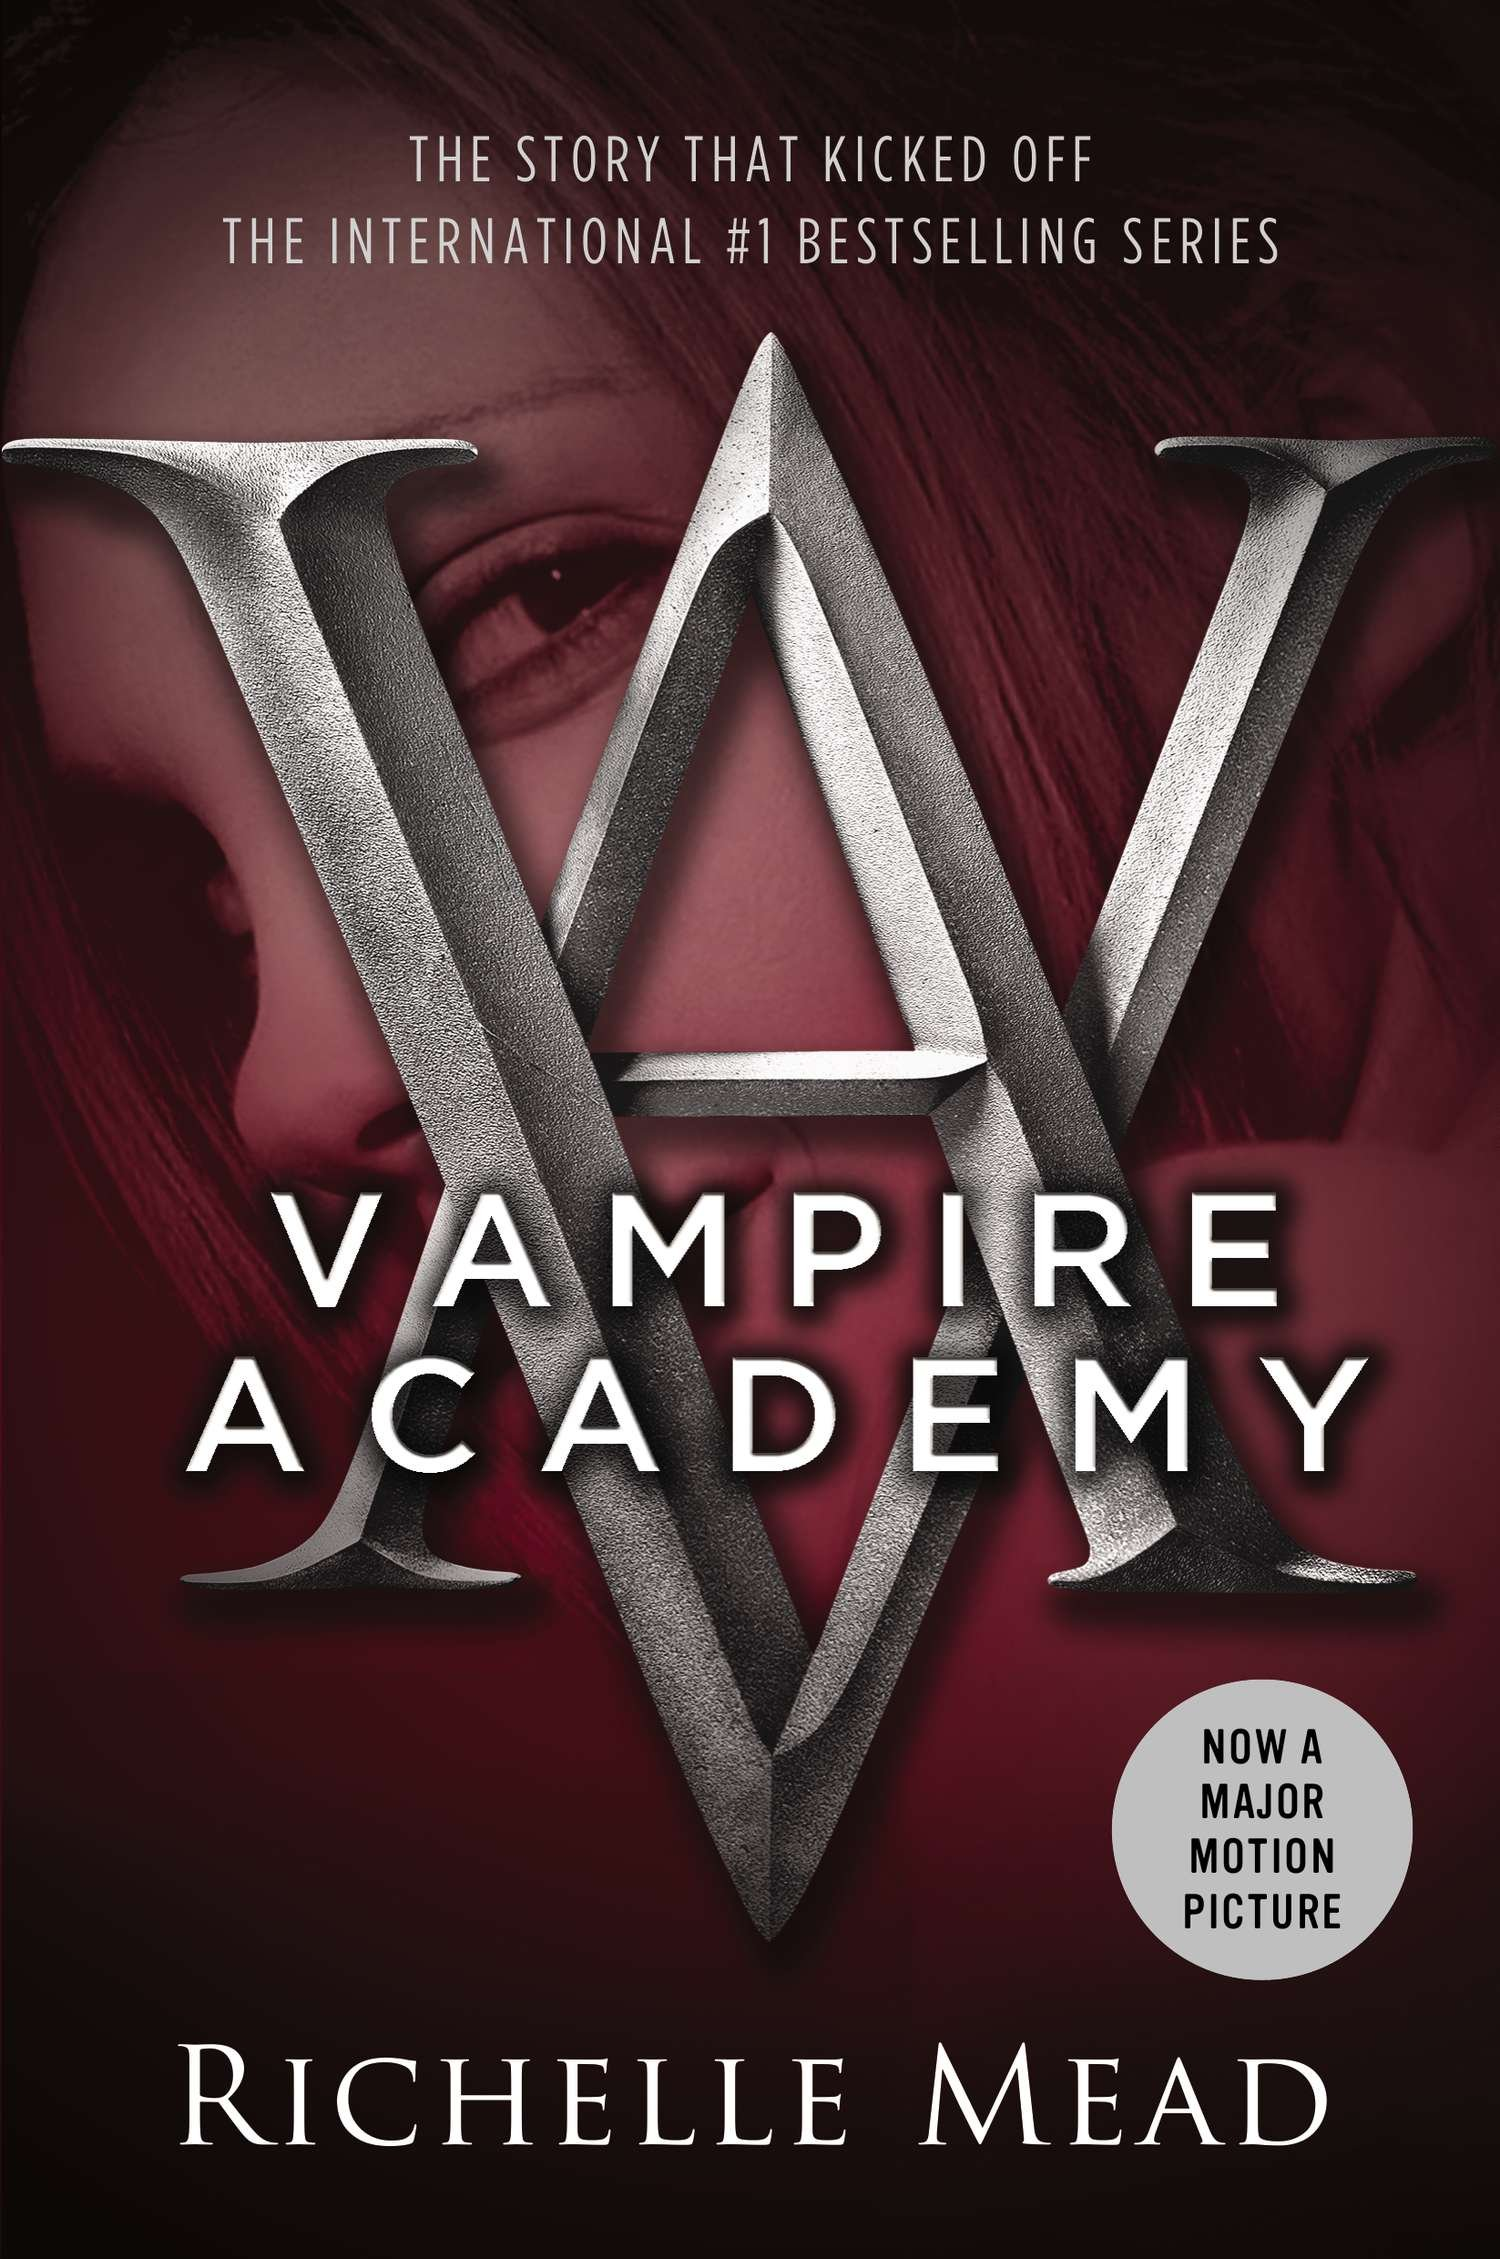 Book Vs Movie Vampire Academy Is A Lesson In Great Books